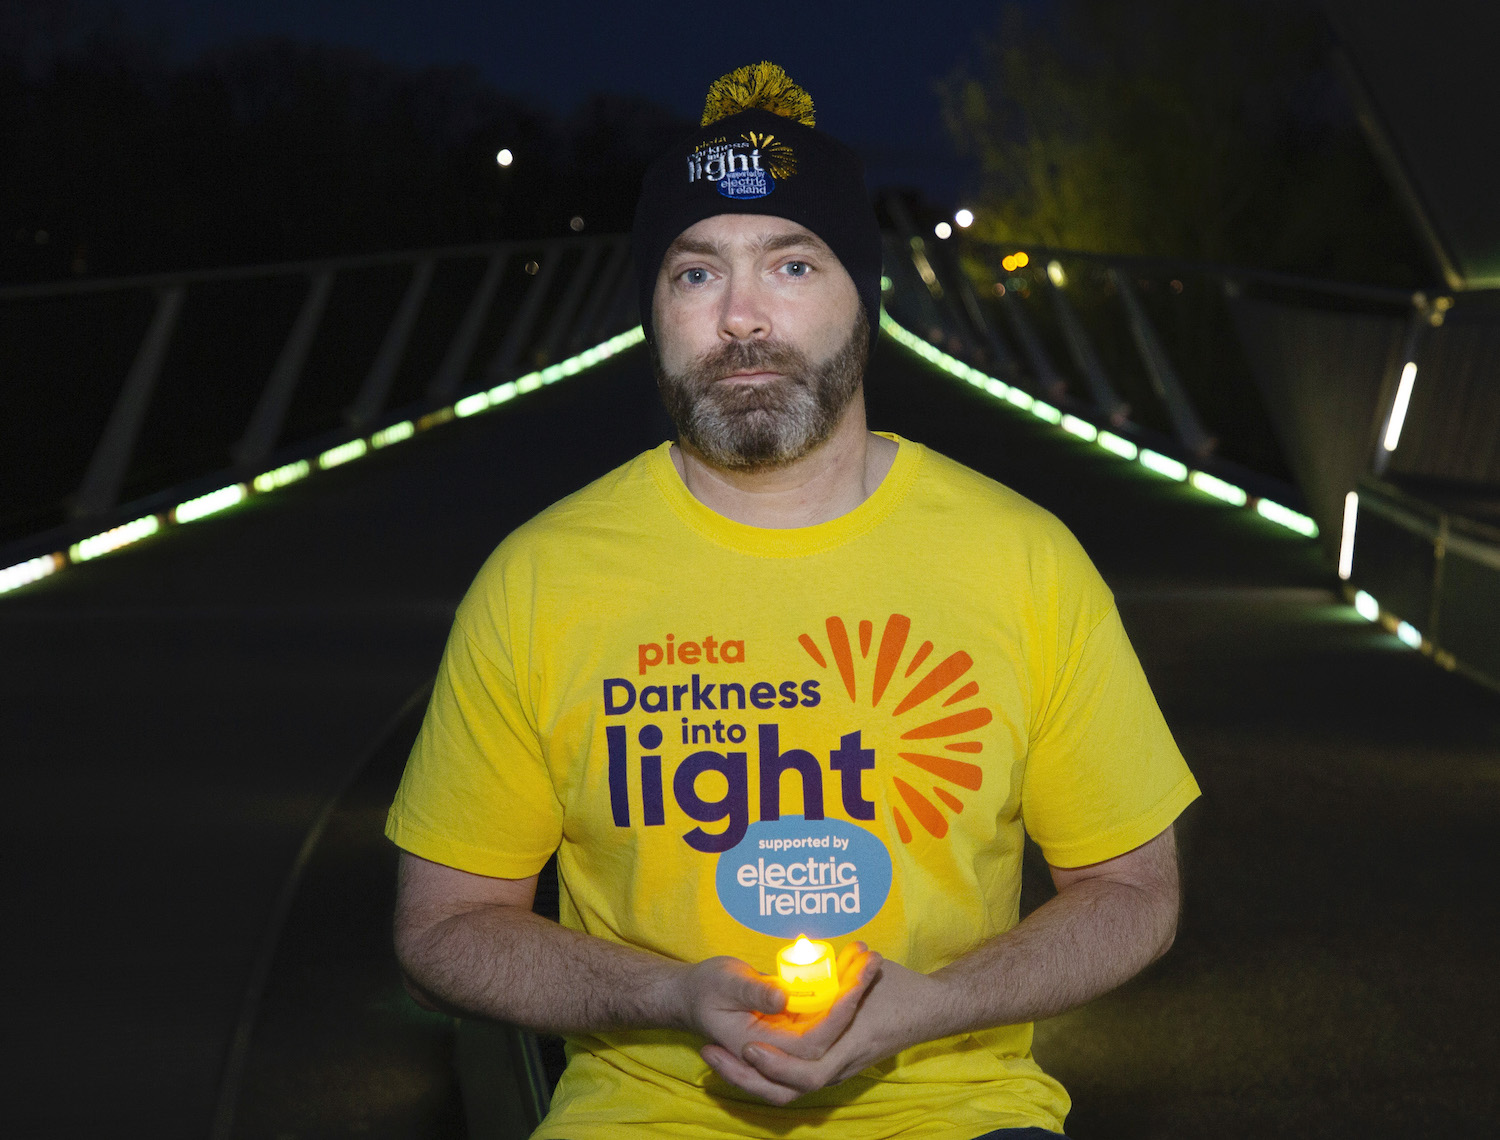 Darkness into Light Limerick 2021 - Author Donal Ryan is one of this years ambassadors